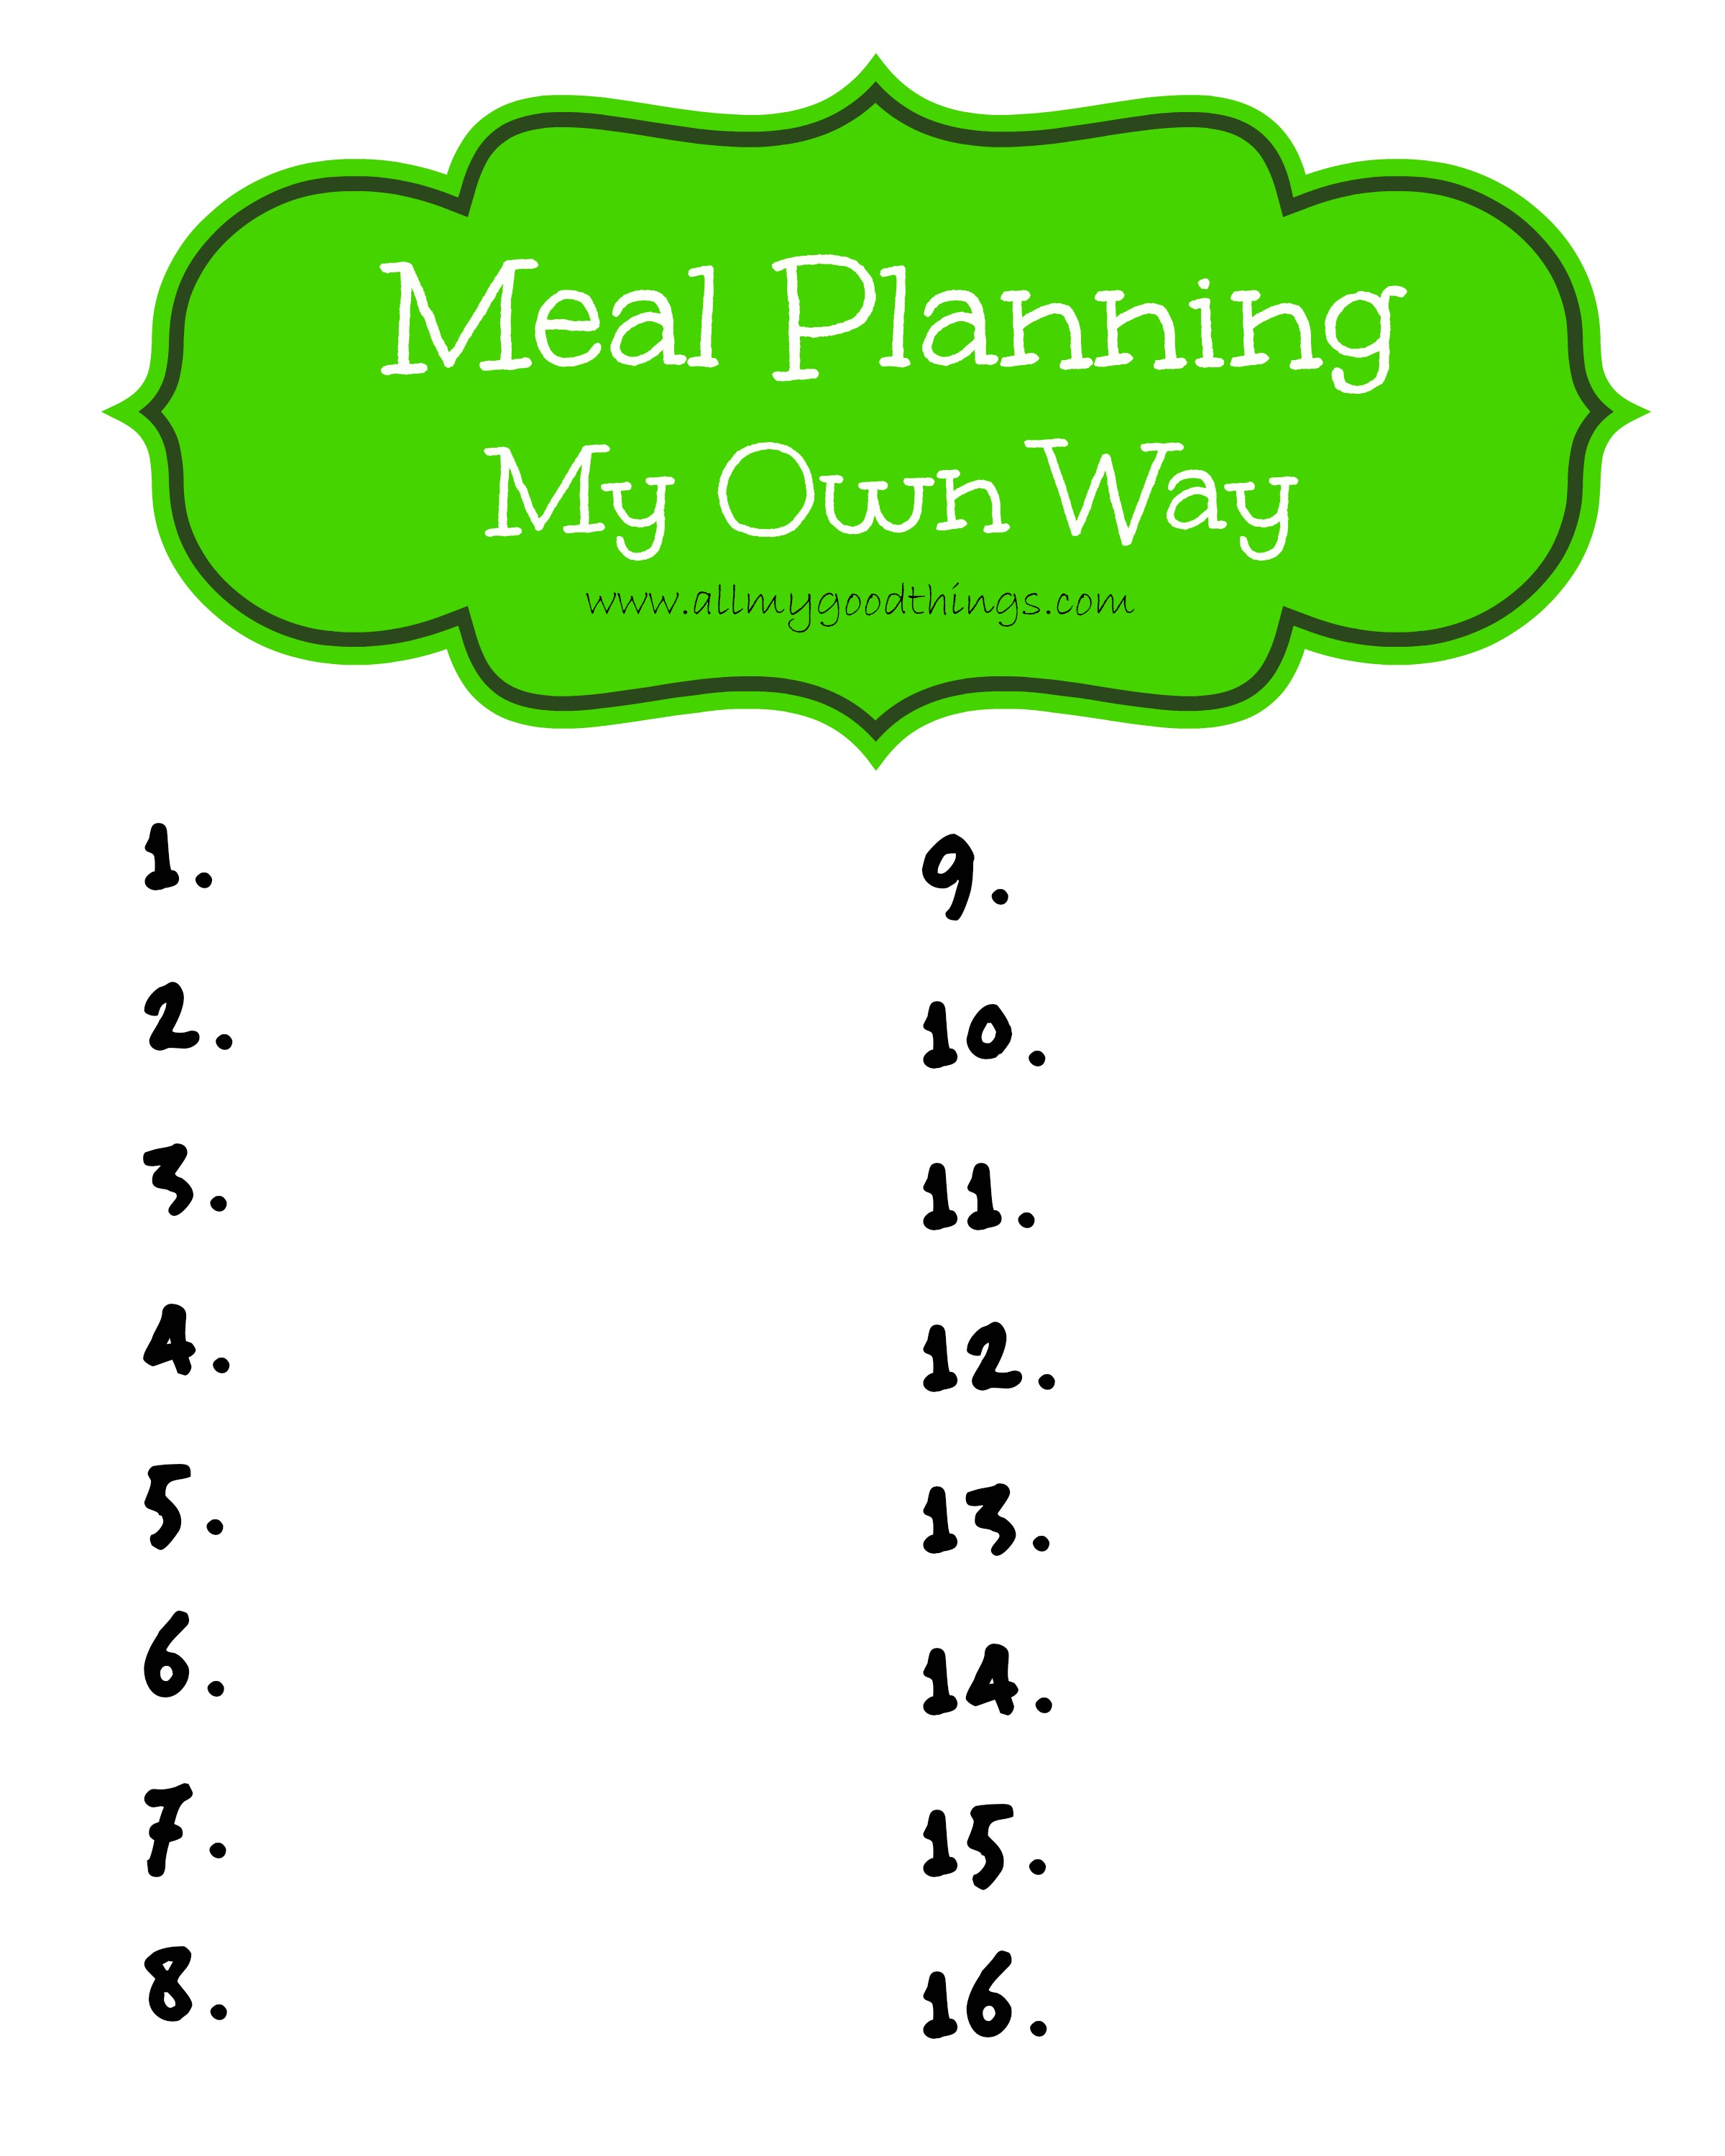 Meal Planning My Own Way